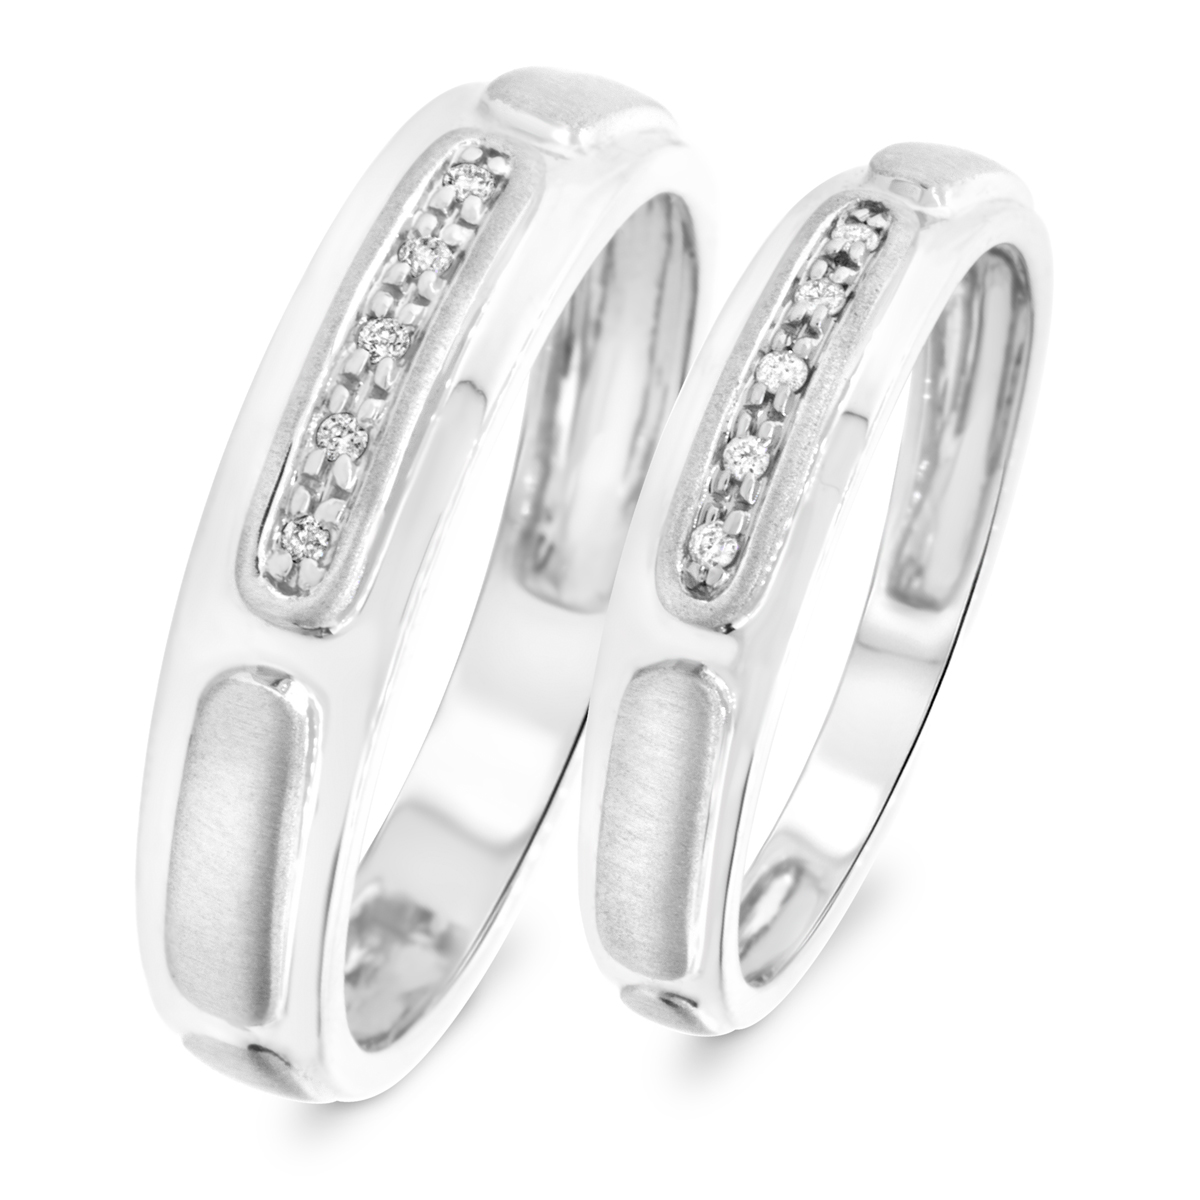 1/15 Carat T.W. Round Cut Diamond His And Hers Wedding Band Set 10K White Gold-